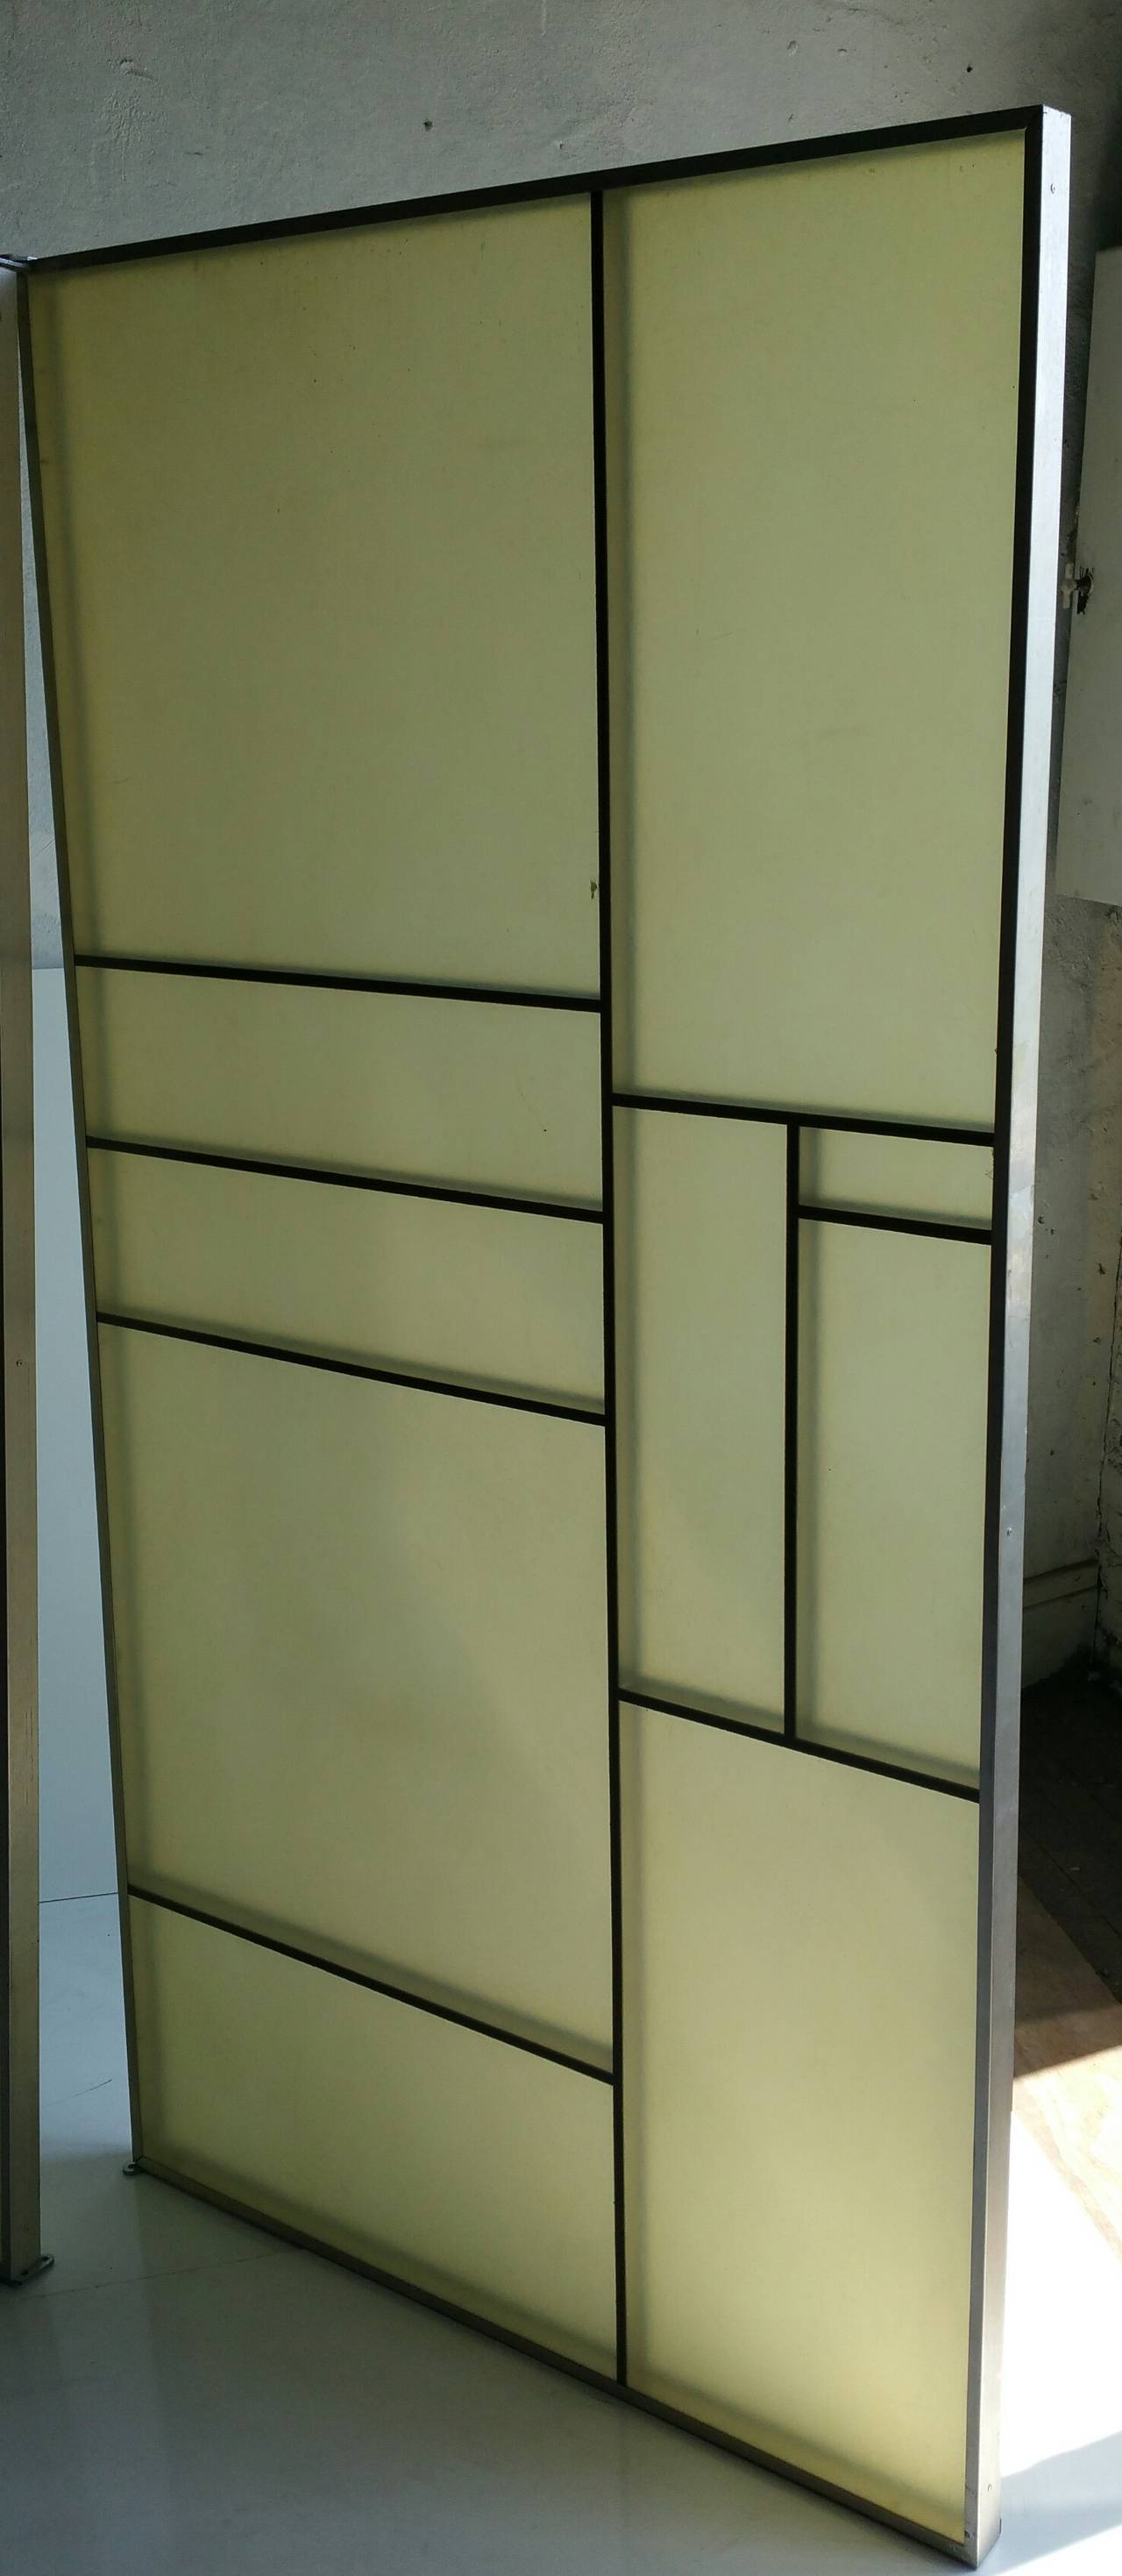 American Architectural Aluminum and Fiberglass Panels or Screen, Mondrian Design For Sale